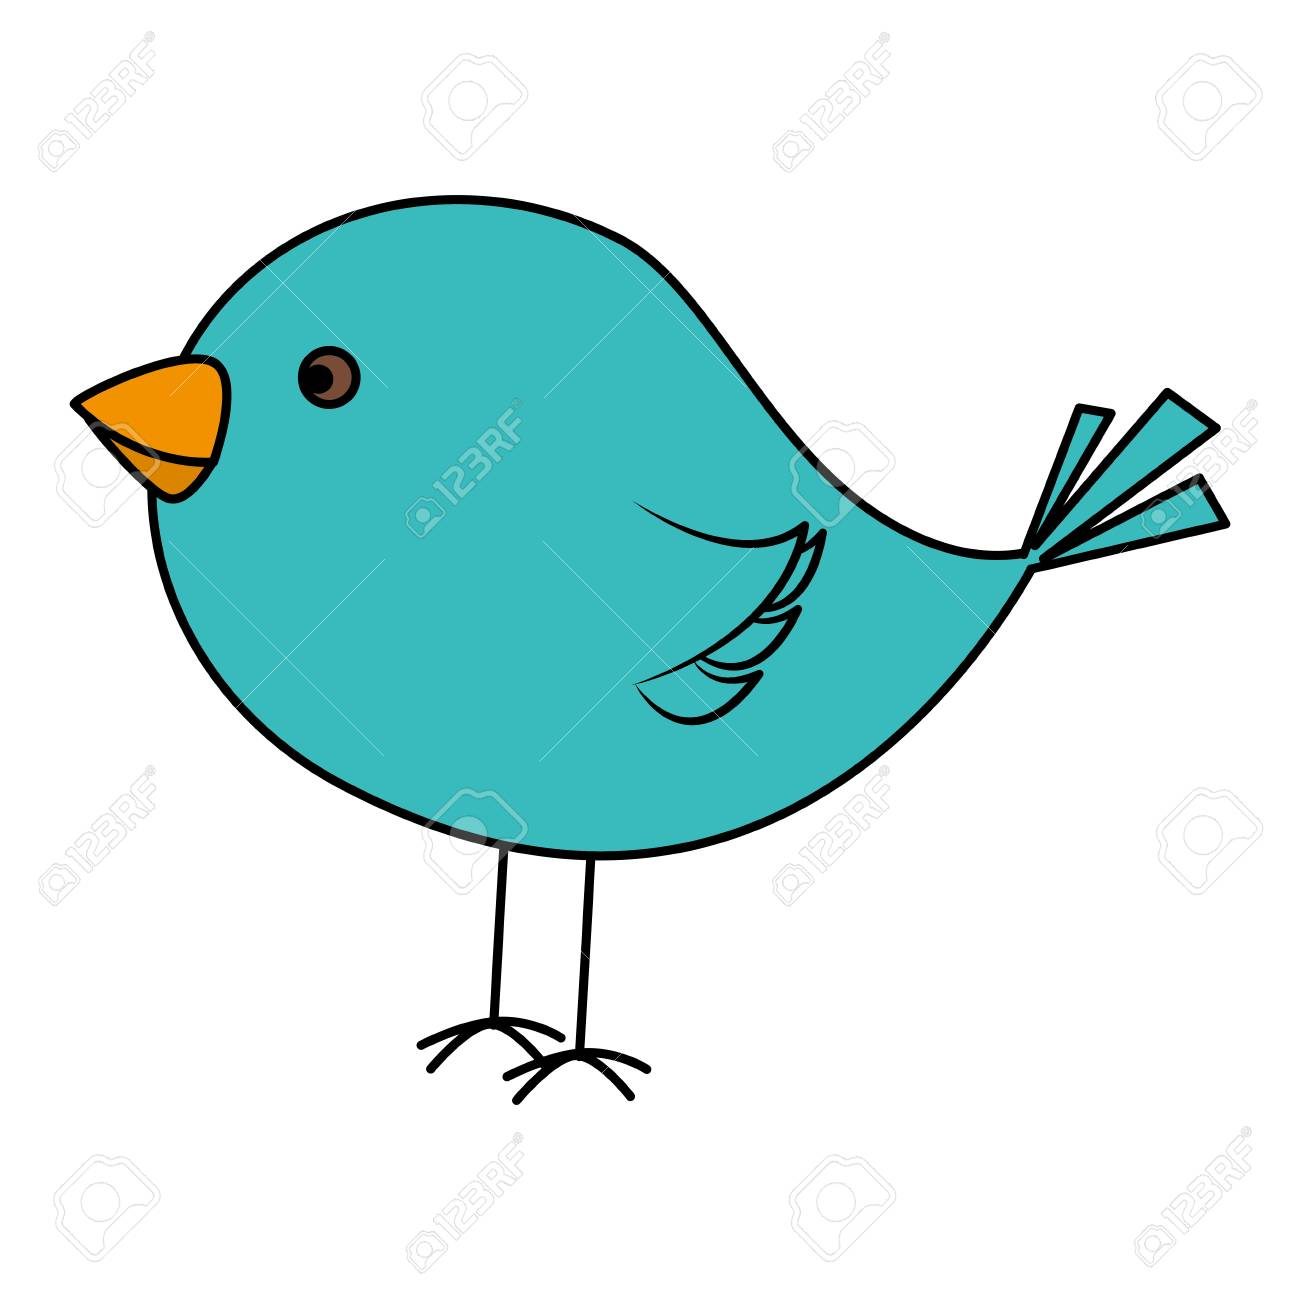 Cute Bird Drawing Icon Vector Illustration Design Royalty Free Cliparts Vectors And Stock Illustration Image 82984869